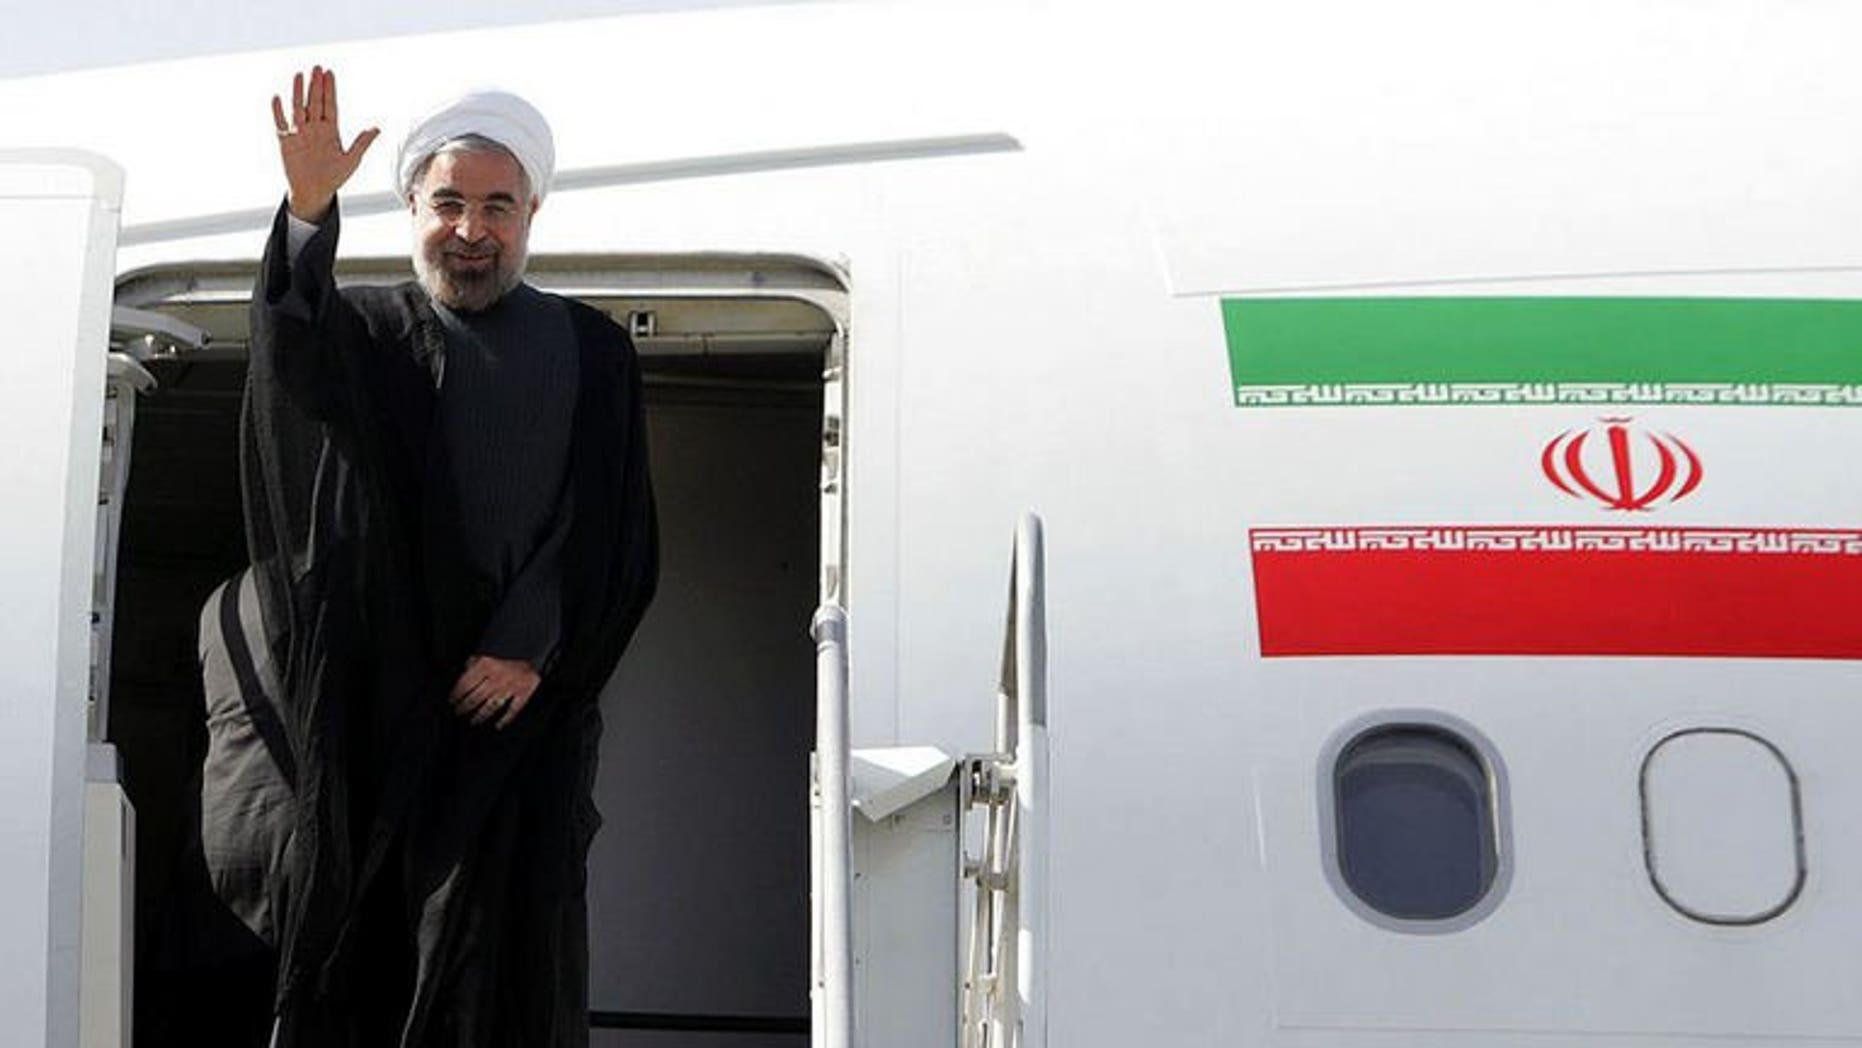 A handout picture released by the Iranian presidency shows President Hassan Rowhani waving before entering an airplane to attend the UN General Assembly, at Tehran's Mehrabad Airport on September 23, 2013.